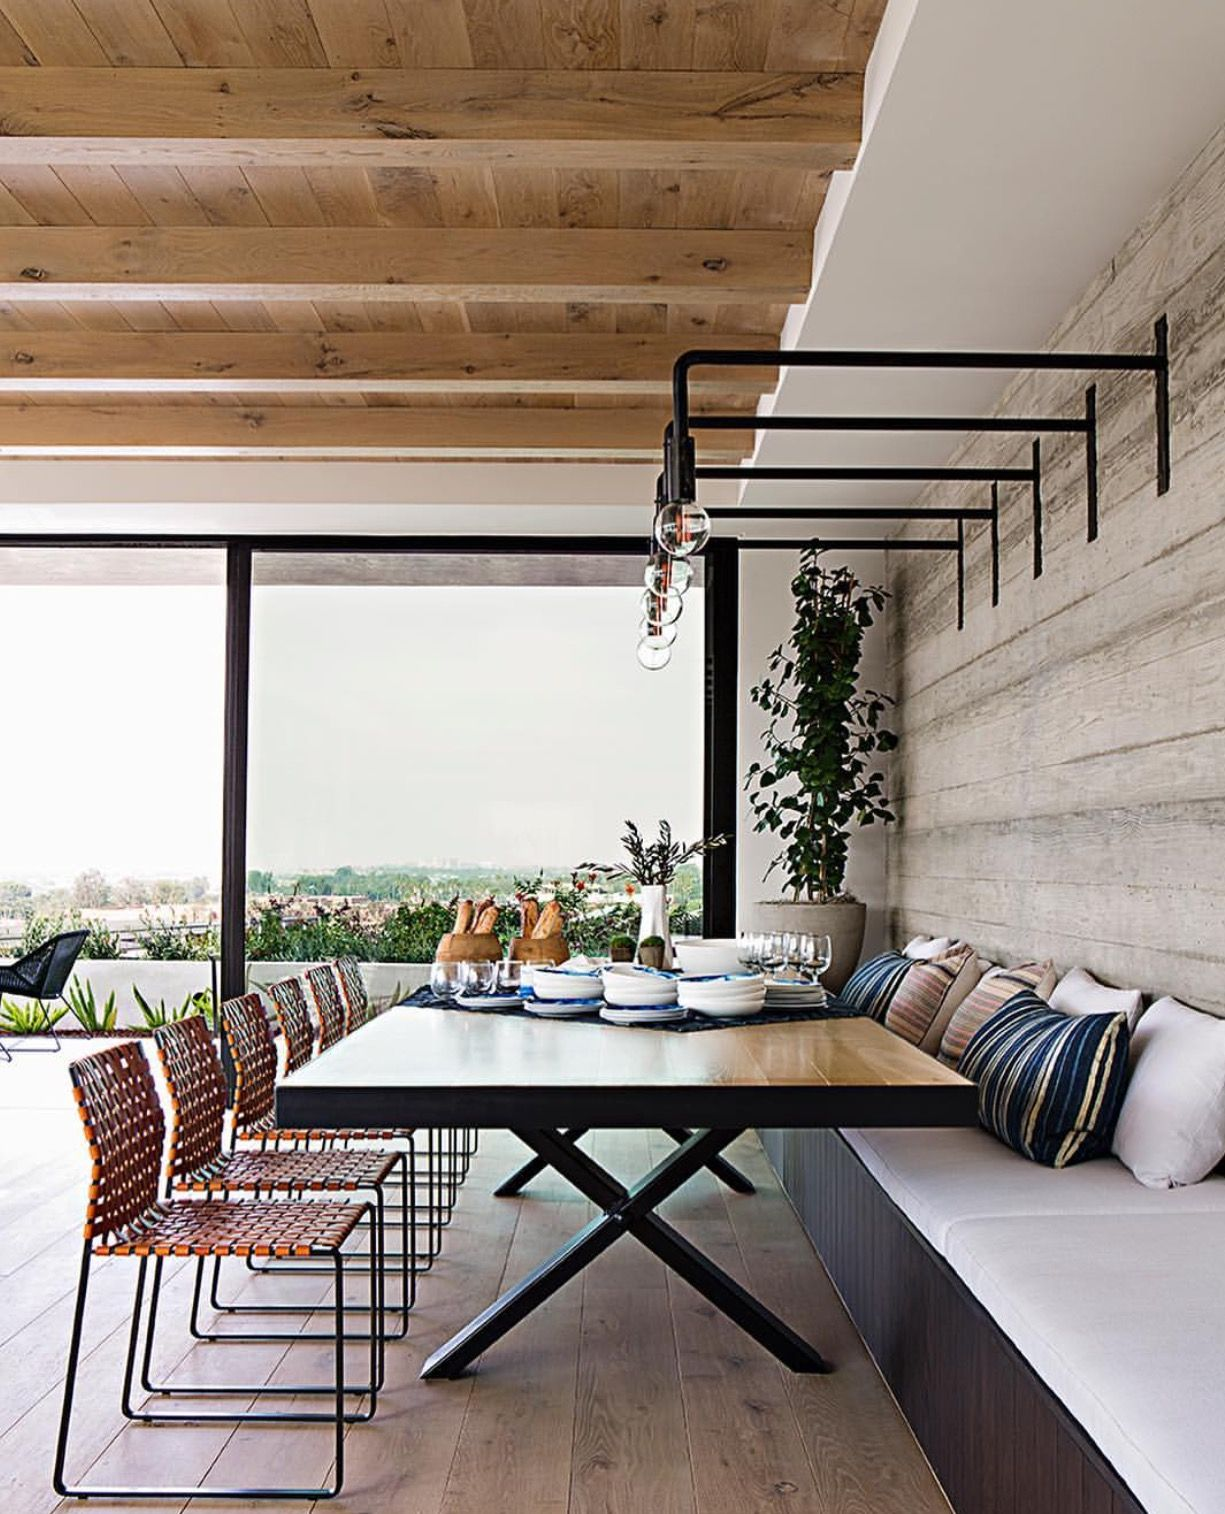 Kitchen Dining Tables Cheap Cabinets For Pin By Carlybarba On Lighting In 2019 Room Rooms Banquette Side Outdoor